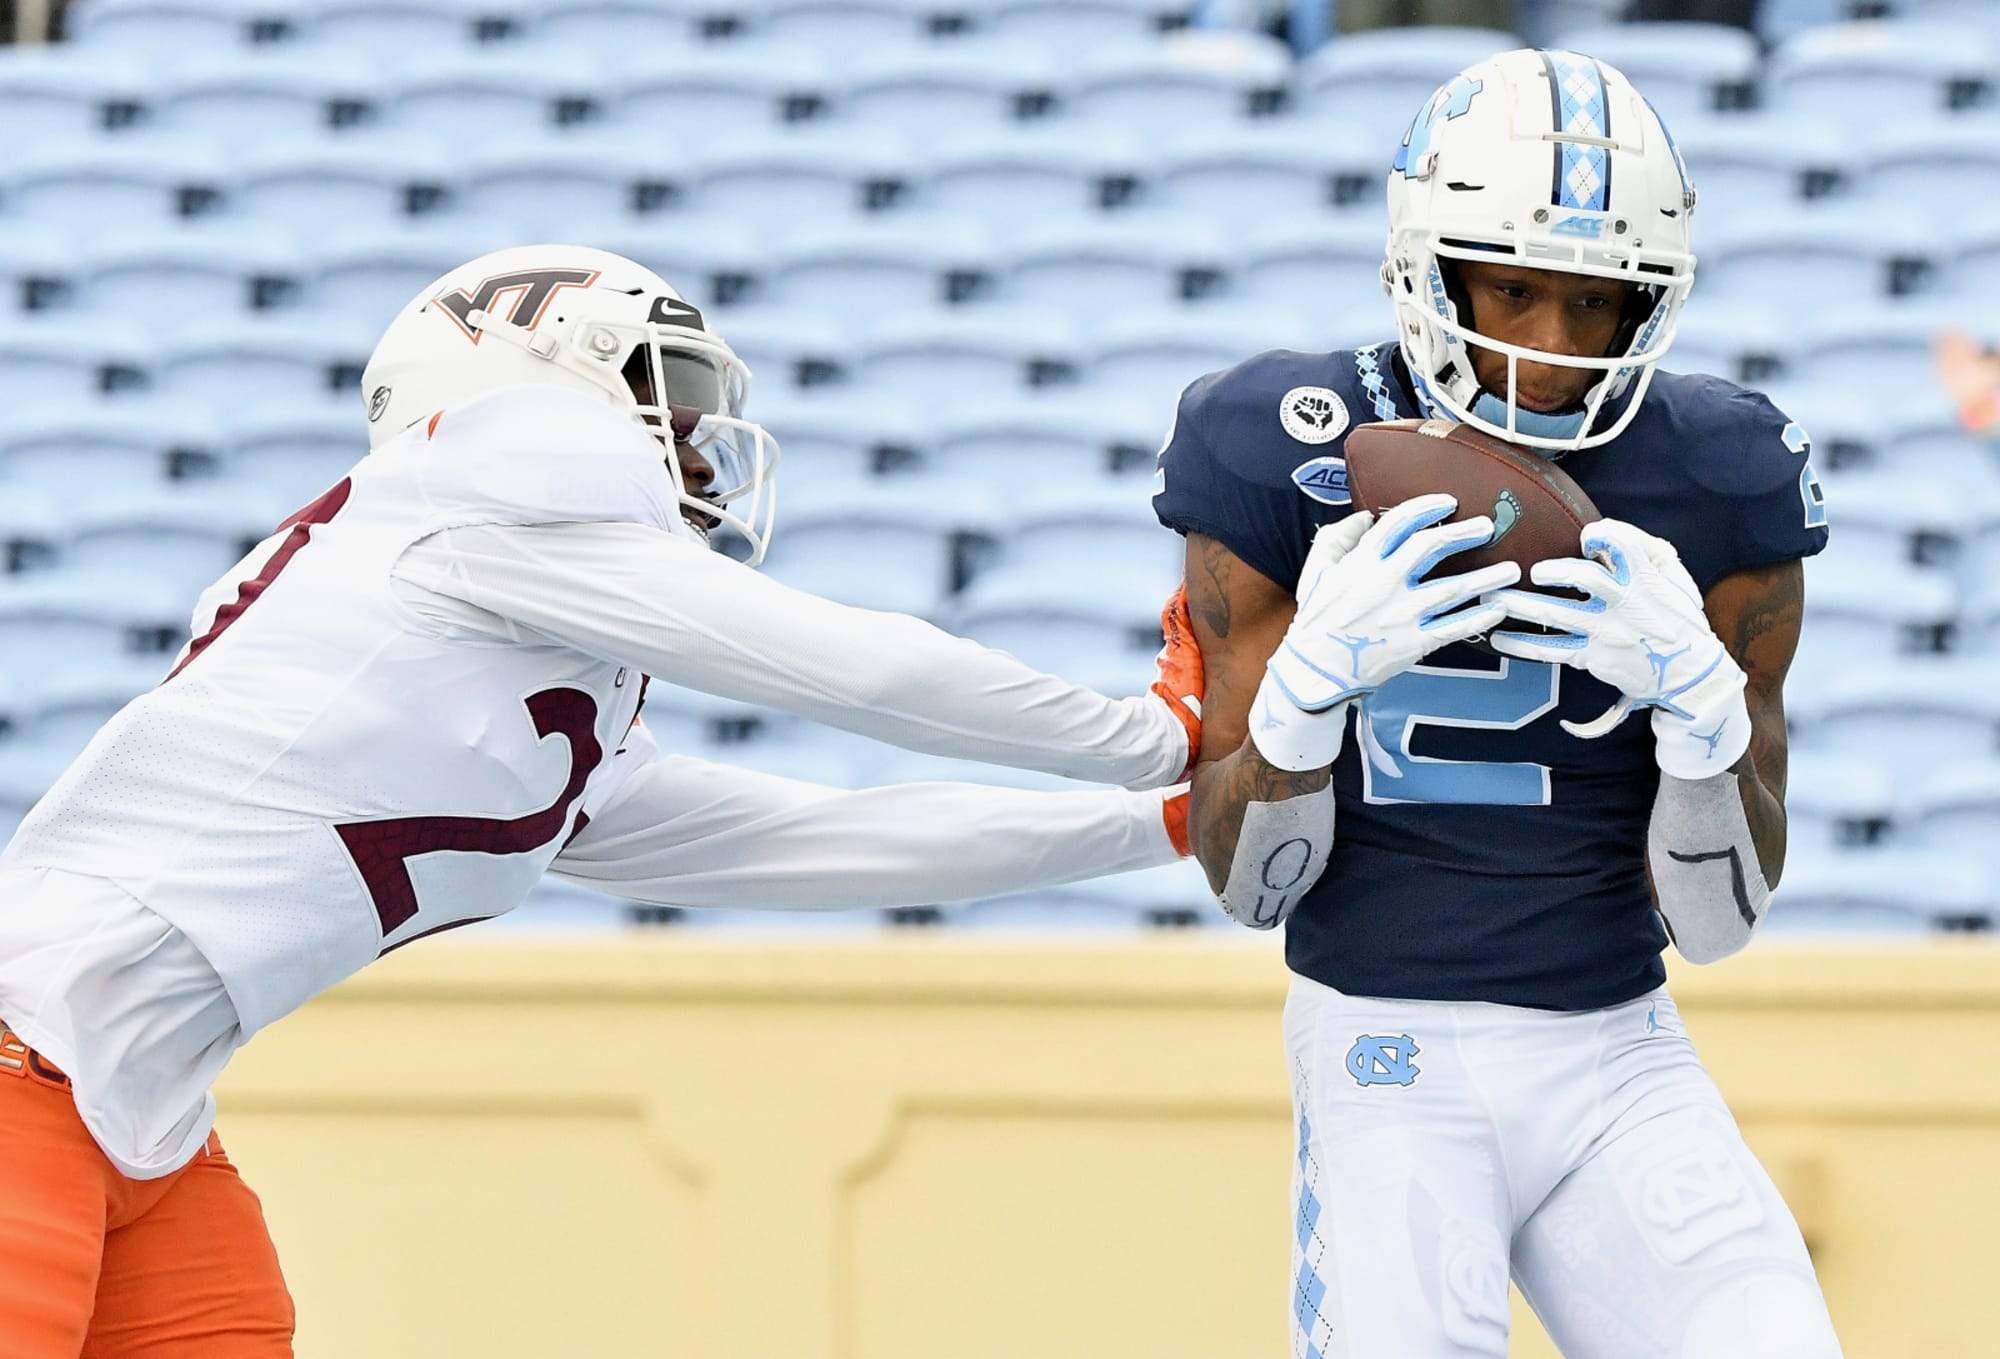 2021 NFL Draft: Washington selects UNC WR Dyami Brown